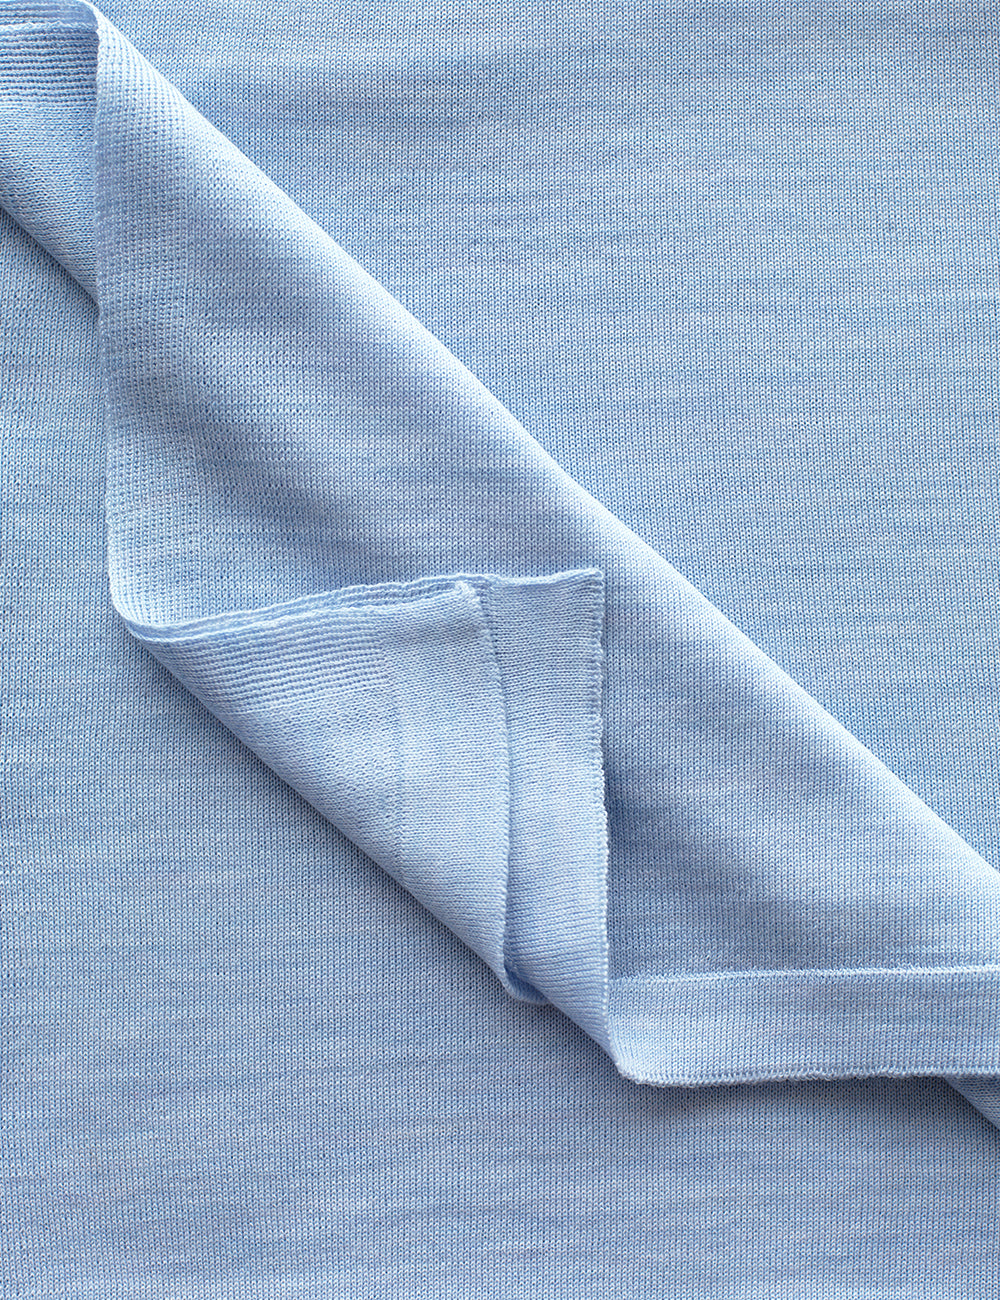 Australian Superfine Merino Wrap Colour - Pale Blue Marle